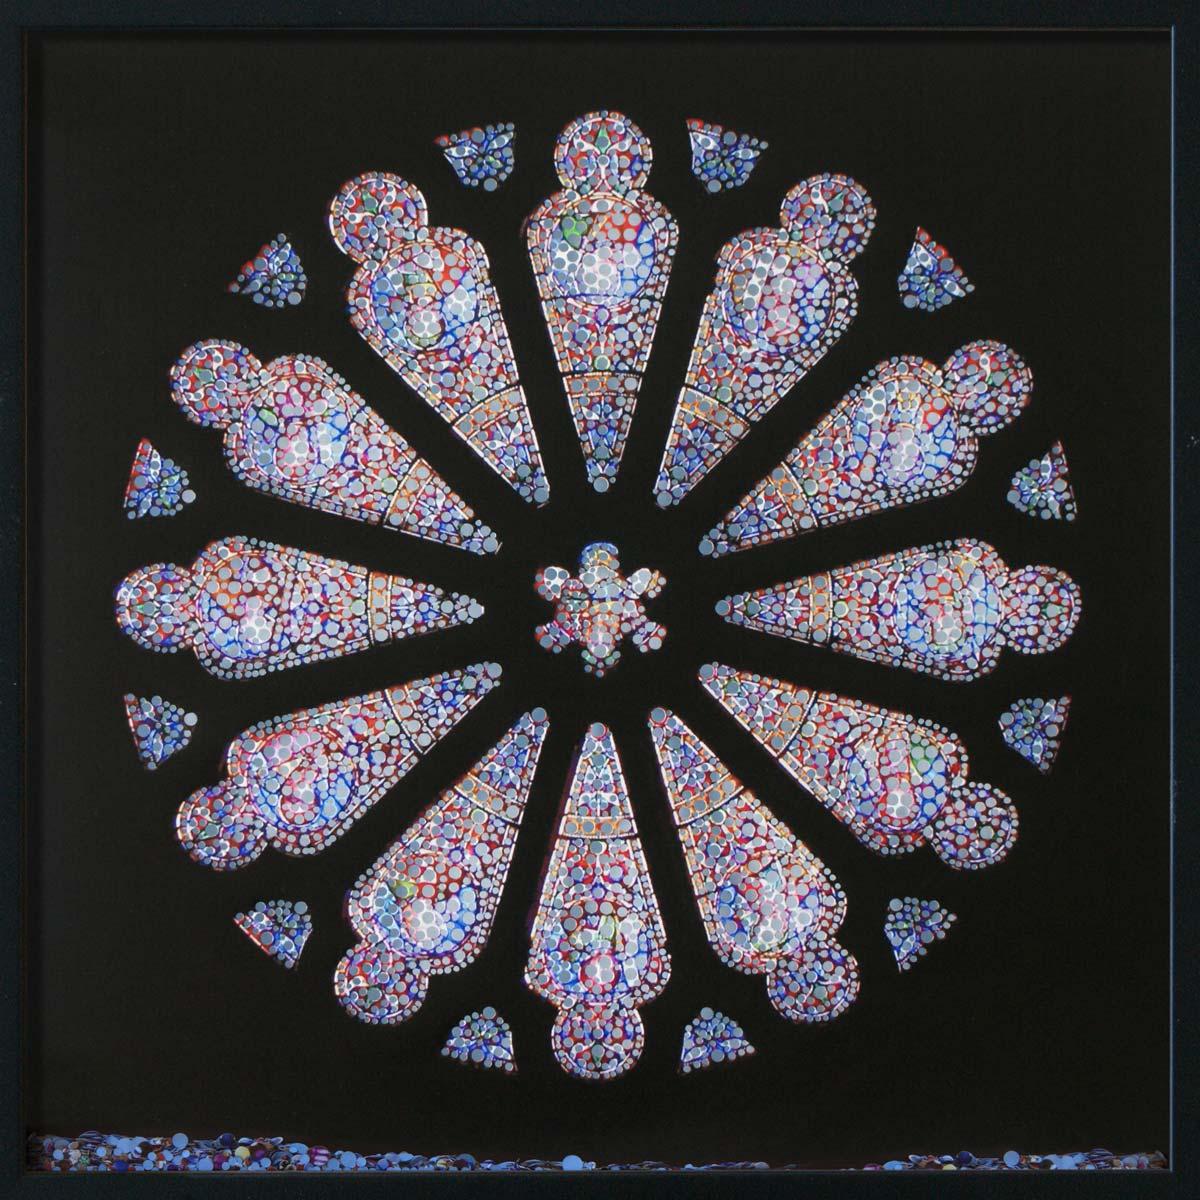 Revelation, Cathedral of the Sacred Heart, Richmond, © 2011, Perforated inkjet print, loose confetti produced by the perforation process, each 50 x 50 cm